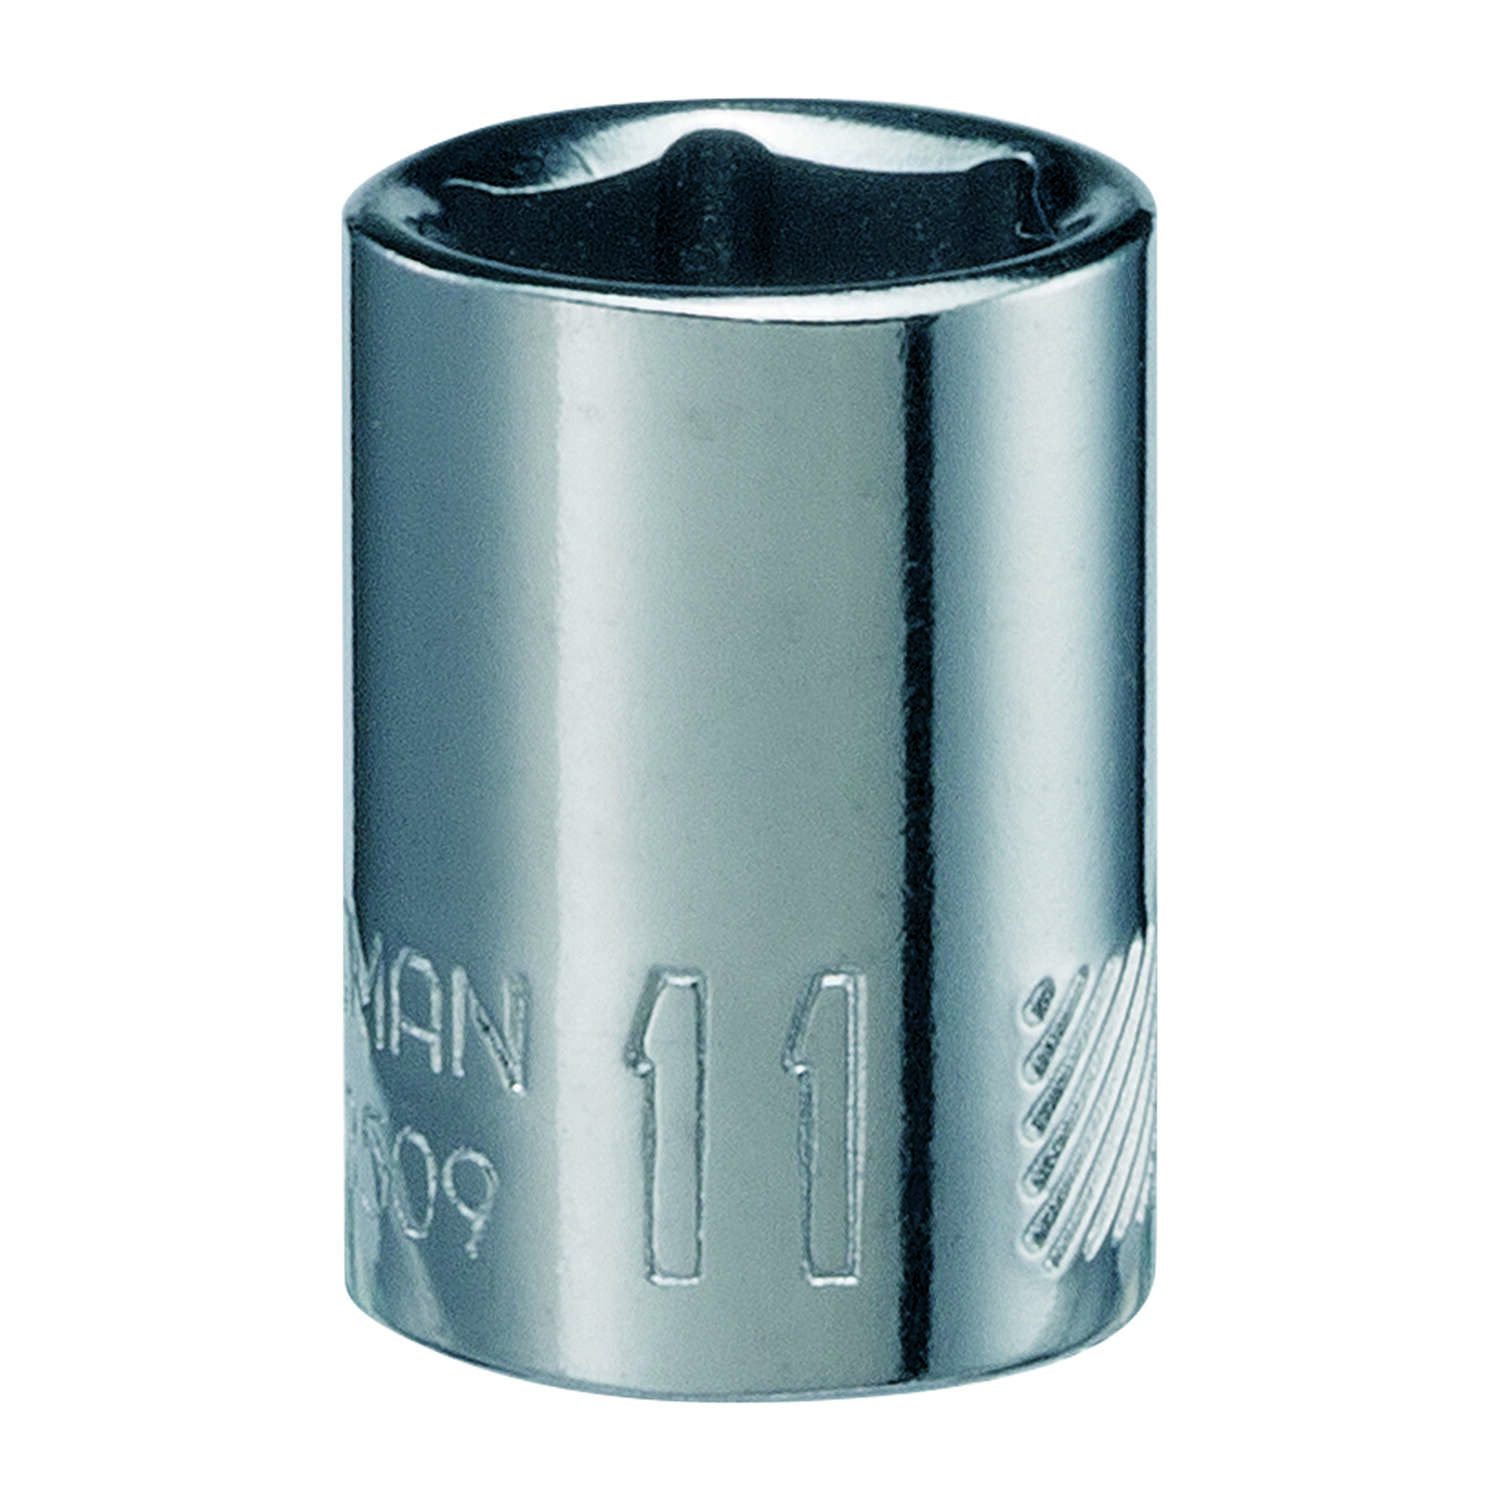 Craftsman  11 mm  x 1/4 in. drive  Metric  6 Point Standard  Shallow Socket  1 pc.